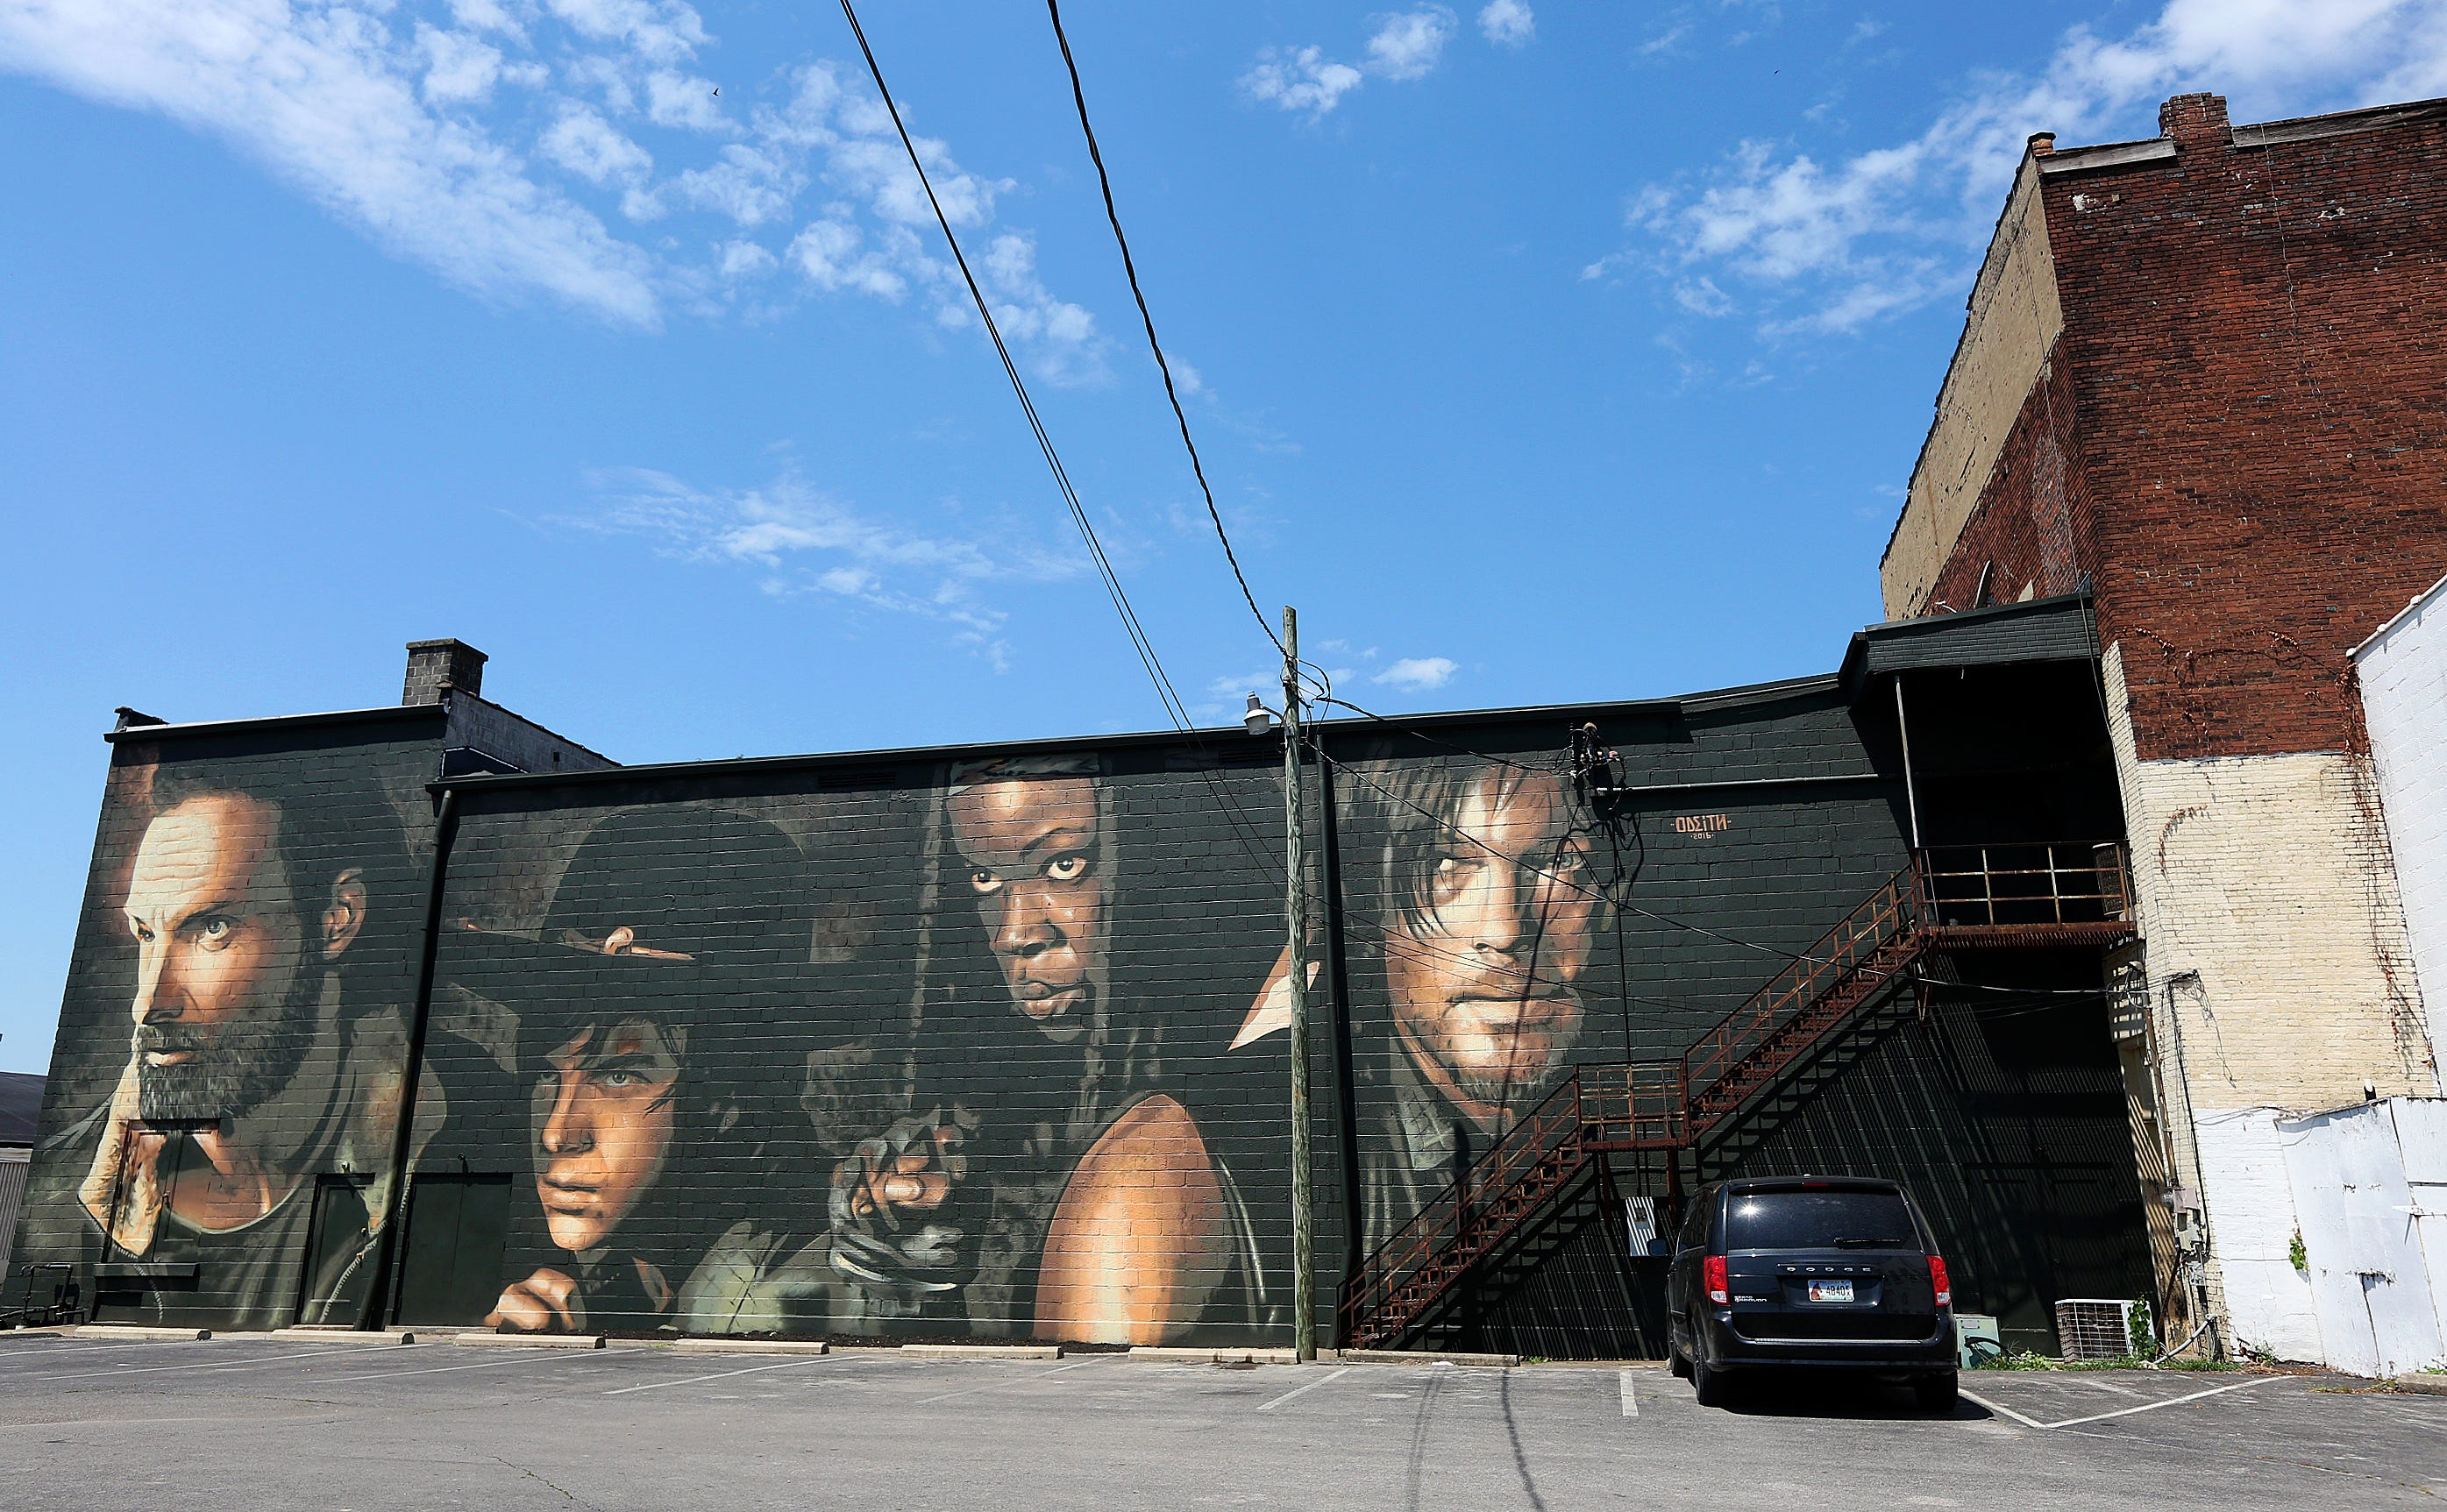 The Walking Dead\u0027 Day comes to Ky. town Saturday